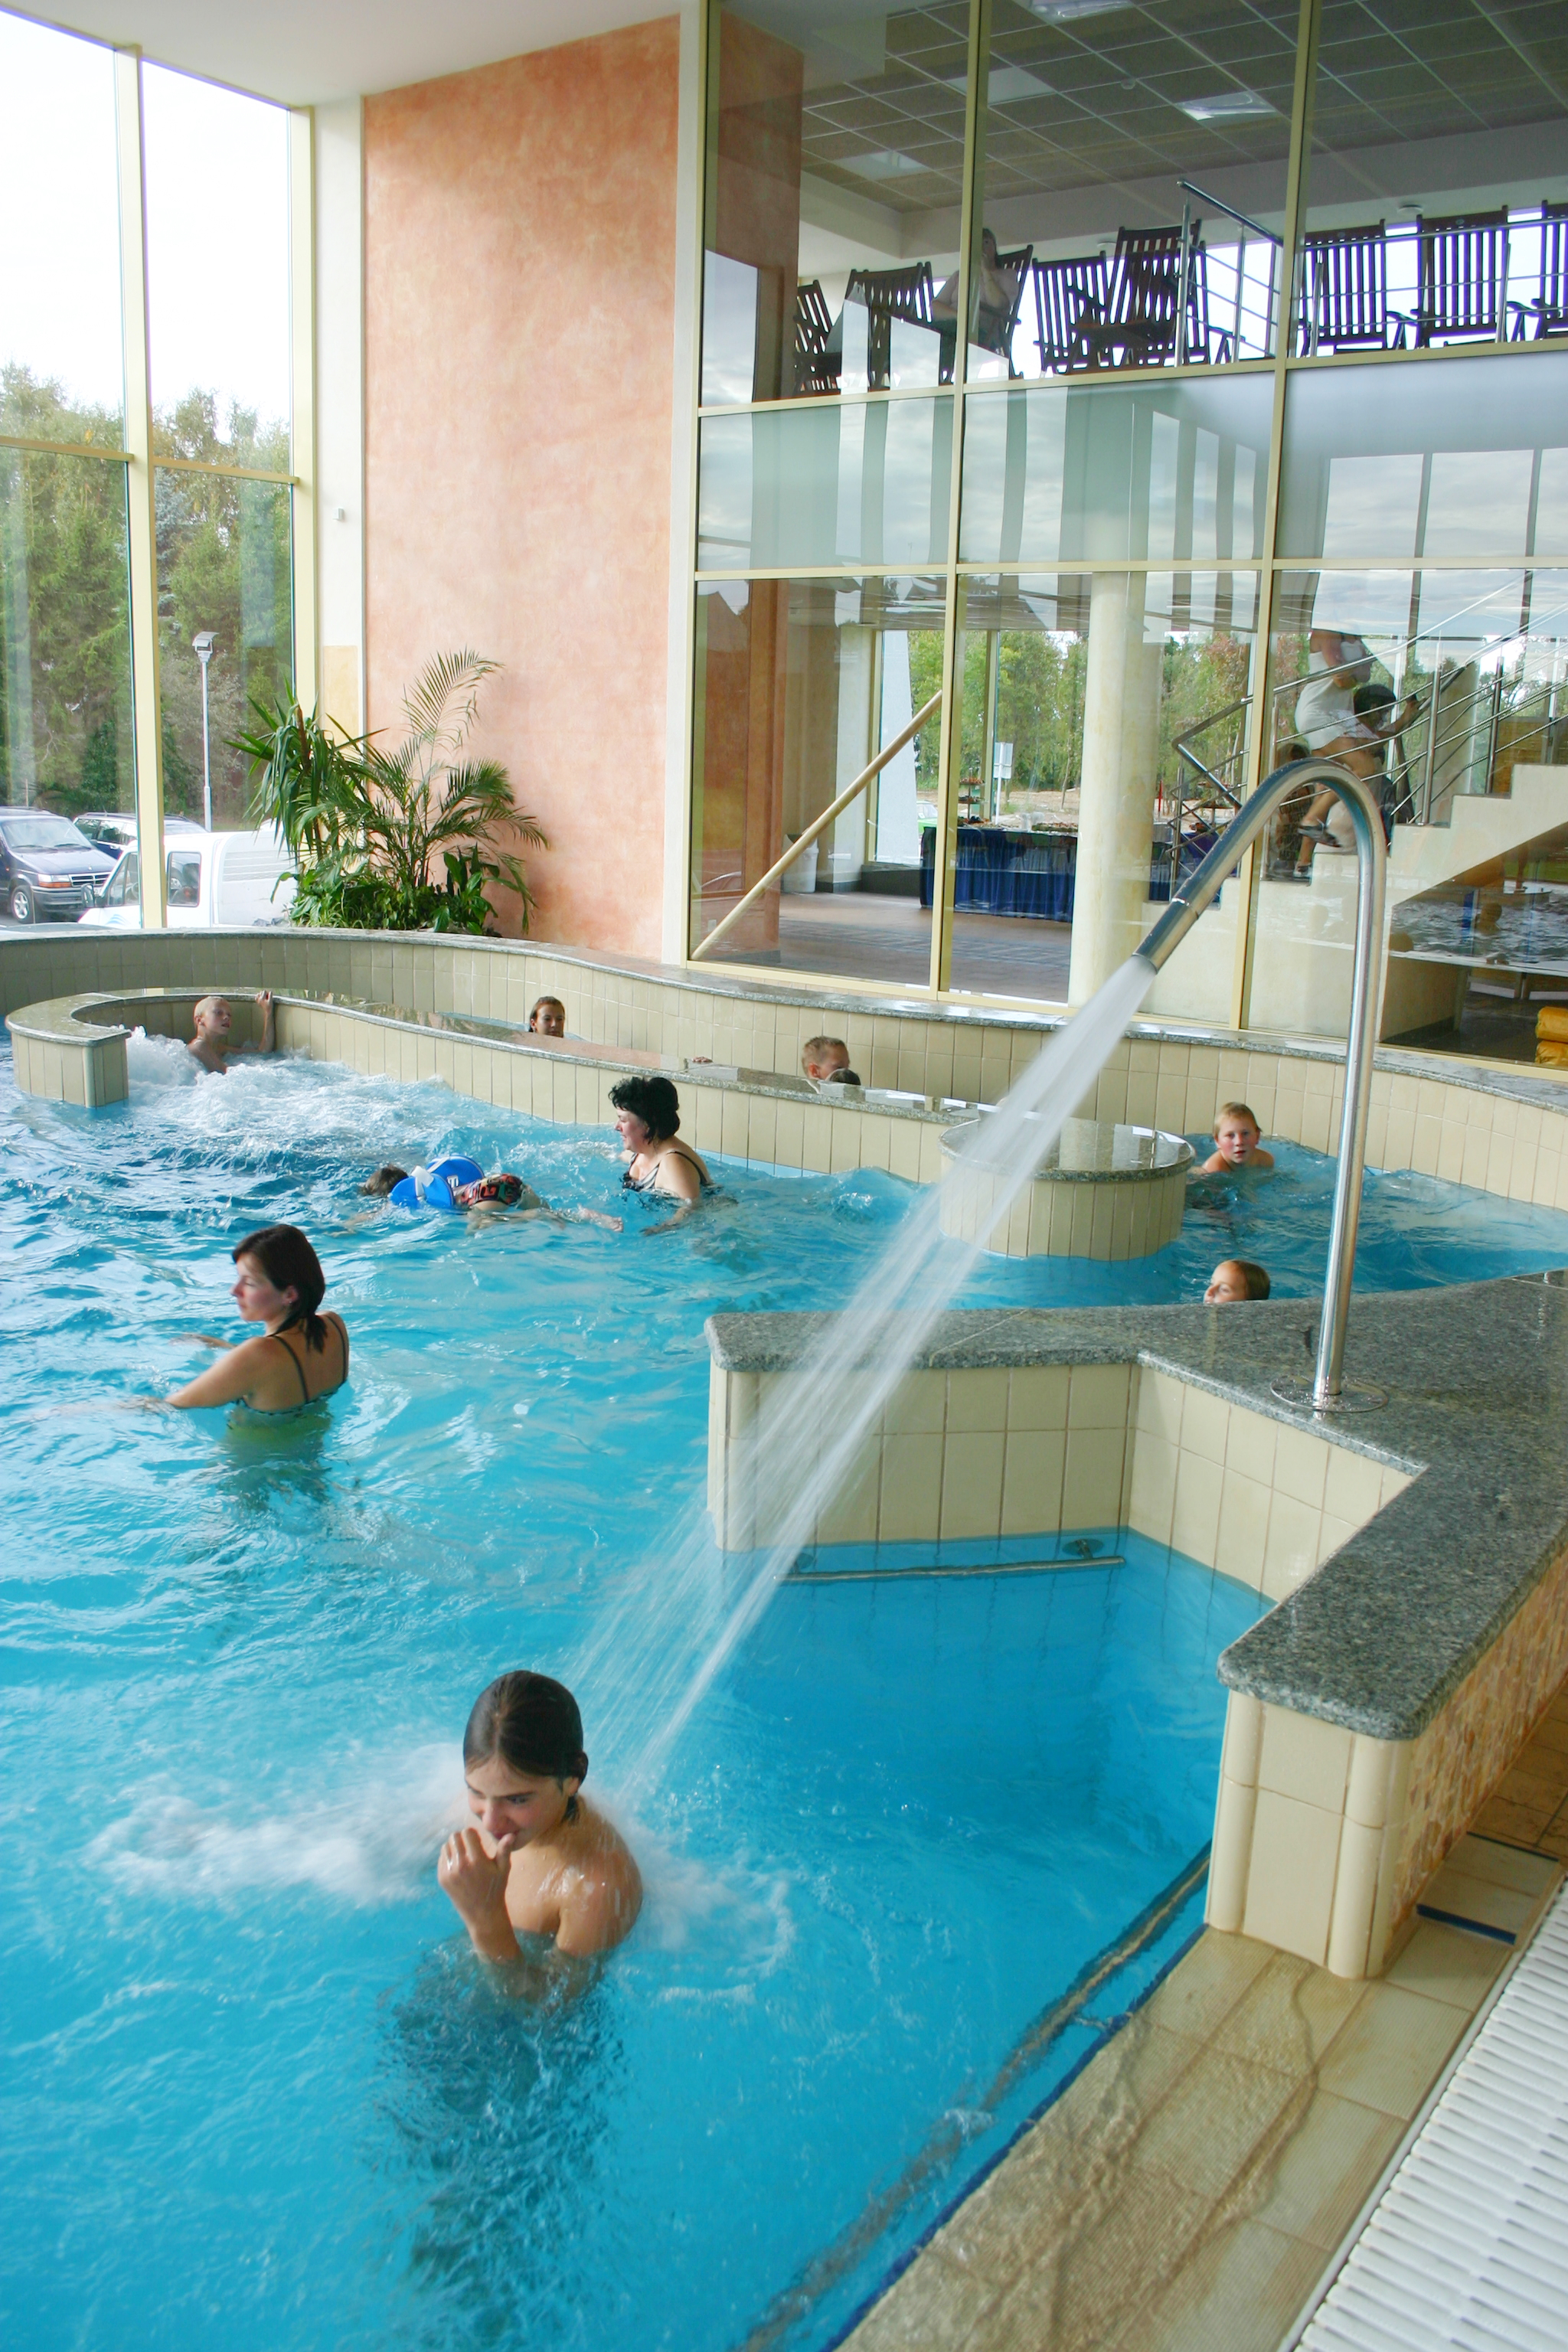 Toila spa hotel in the eastern estonia spas in estonia for Health spa vacation packages